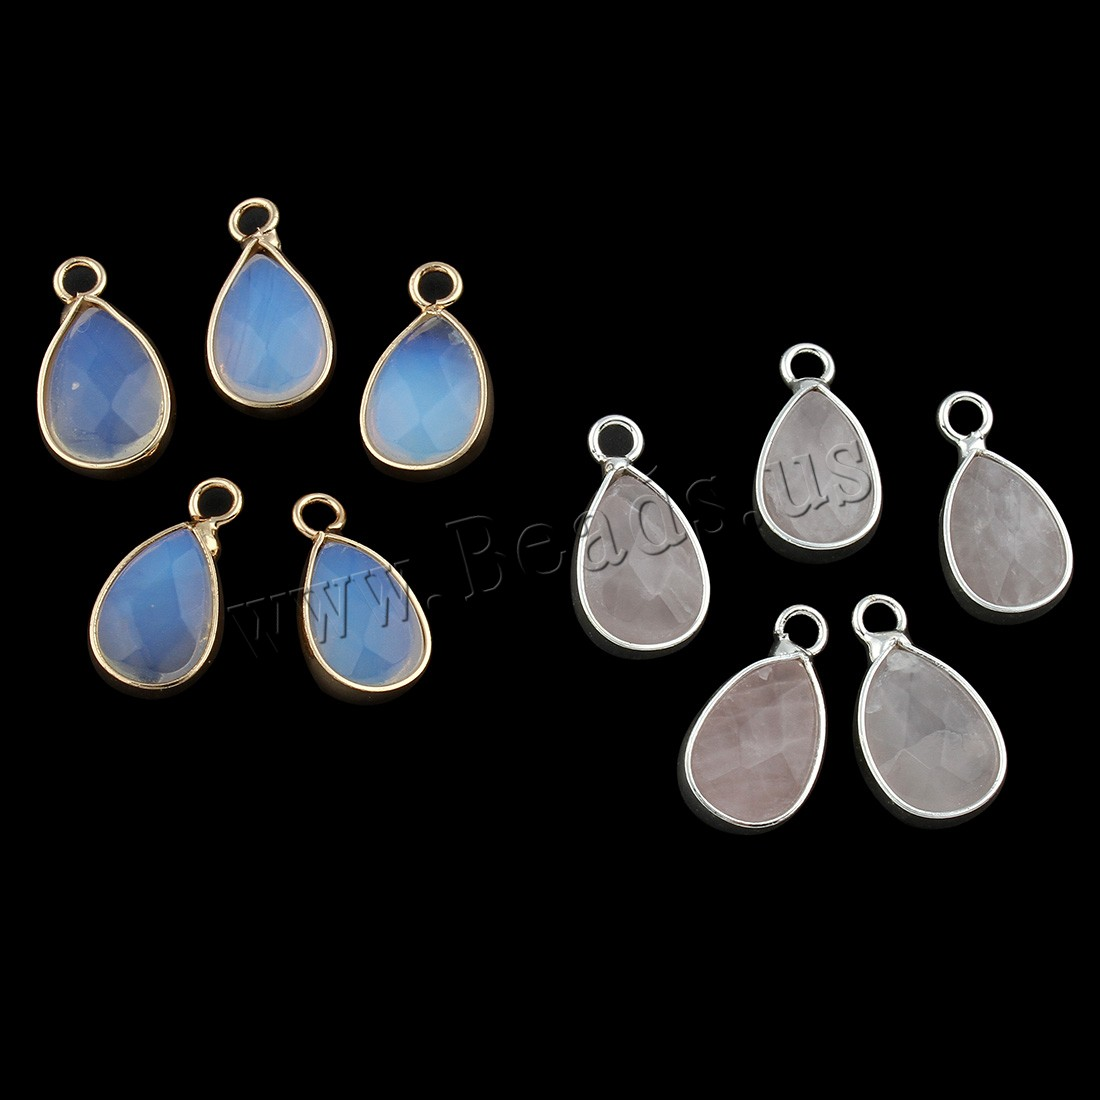 Buy Gemstone Pendants Jewelry Zinc Alloy Teardrop different materials choice & faceted 9x17x5mm Hole:Approx 2mm 5PCs/Bag Sold Bag